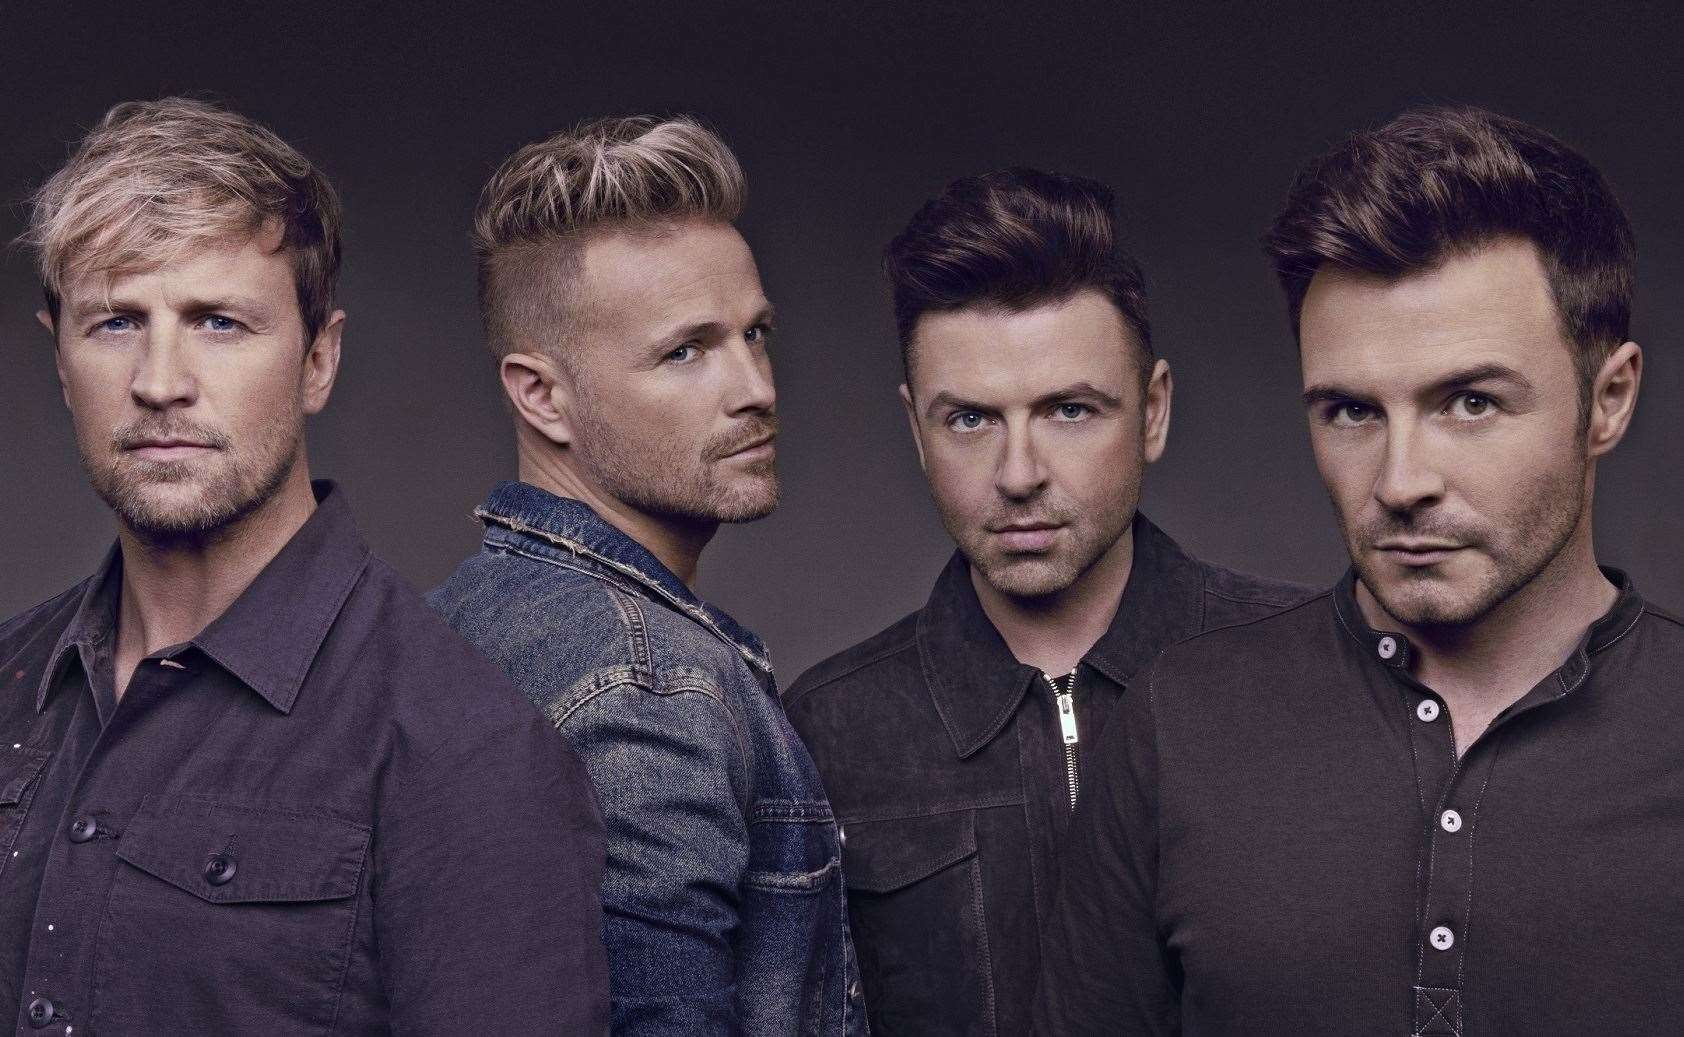 Westlife's cancellation announcement came a few hours after Little Mix's